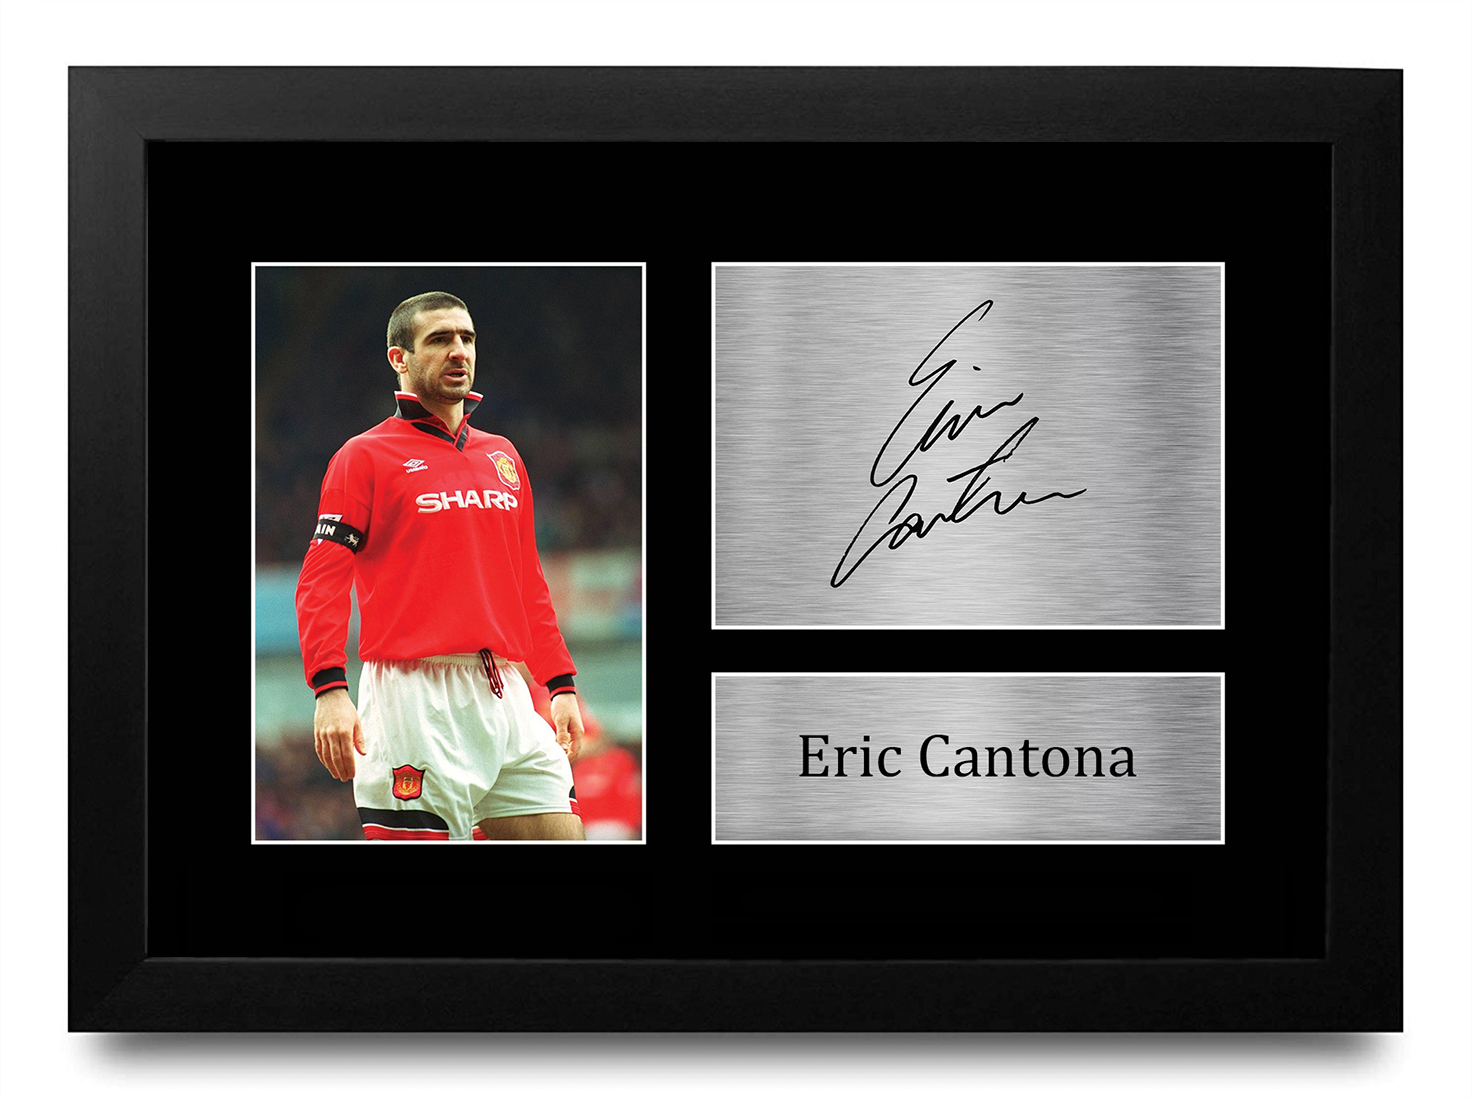 Eric Cantona Signed Pre Printed Autograph Photo Gift For a Man Utd Fan